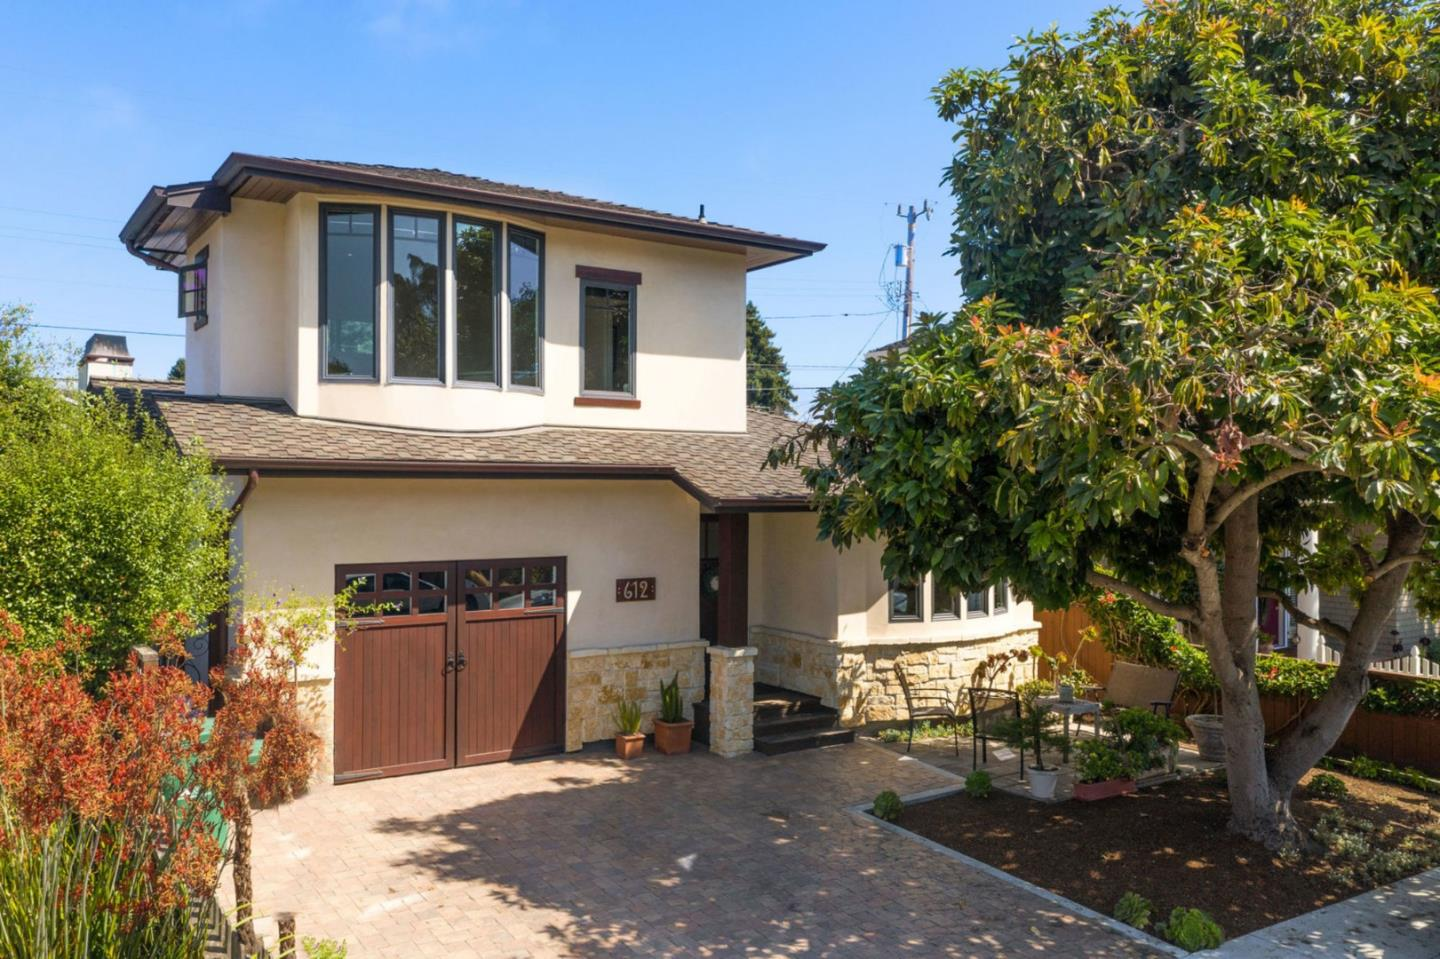 One of a kind home in the highly sought after Riverview Terrace Neighborhood. This fantastic location is a short walk to the beach, Capitola Village, Nob Hill, and Gayles Bakery. Home was rebuilt in 2013 with quality finishes such as copper metal on exterior, Nana Wall folding patio door to back yard, Viking/Thermador appliances, Du Chateau wide plank flooring, Double sinks in master and double heads in shower with Steam Shower, Grohe fixtures, custom cabinetry, and Solar Panels. Mostly single level living with master bedroom, guest bedroom/bath, kitchen, living, dining, and laundry all on main level. Upstairs features large bedroom and half bath. A rare find for Riverview Terrace!